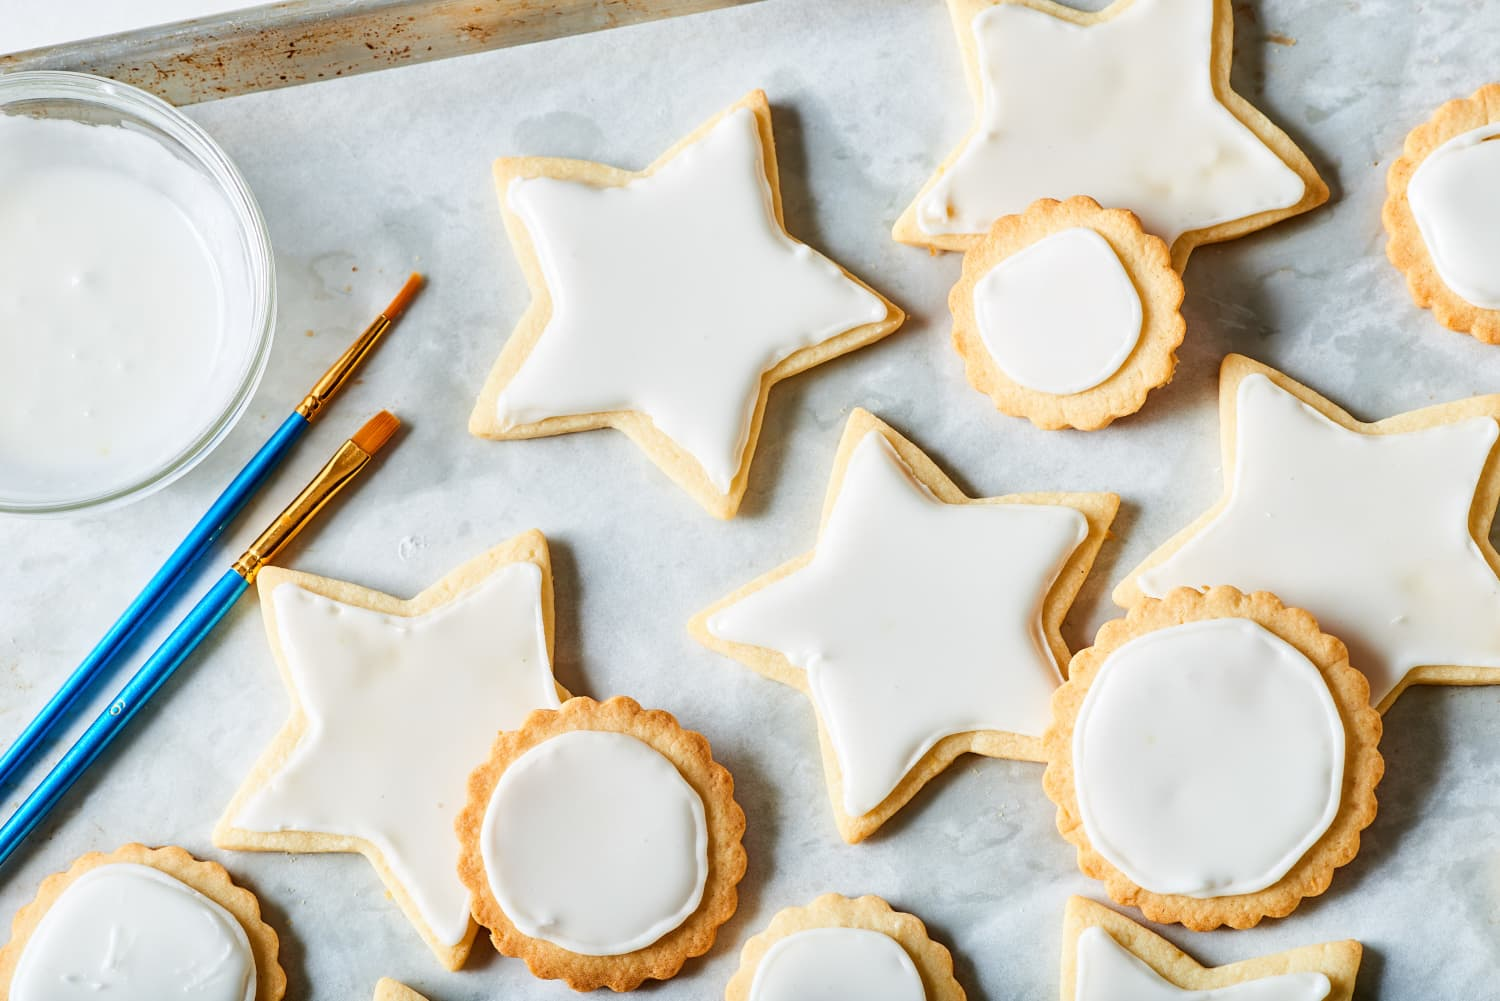 My Go-To Trick for No-Mess Cookie Decor with Kids